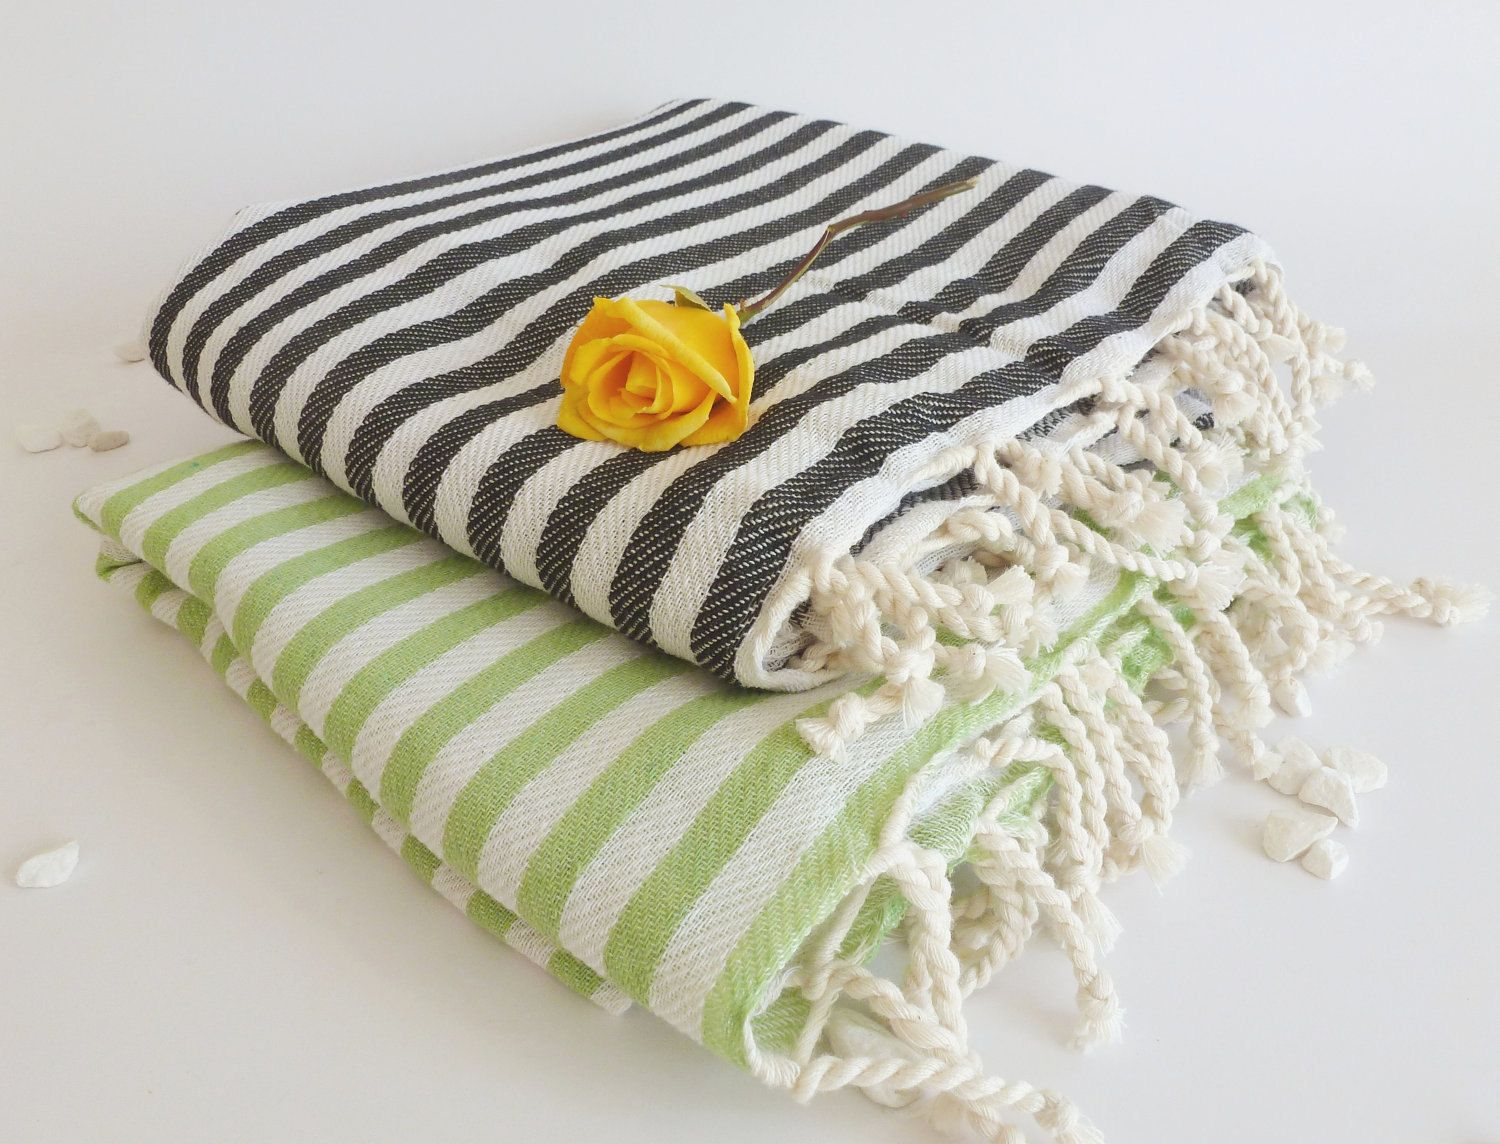 Set Of 2 Turkish Bath Towel Peshtemal Light And Thin Bath Beach